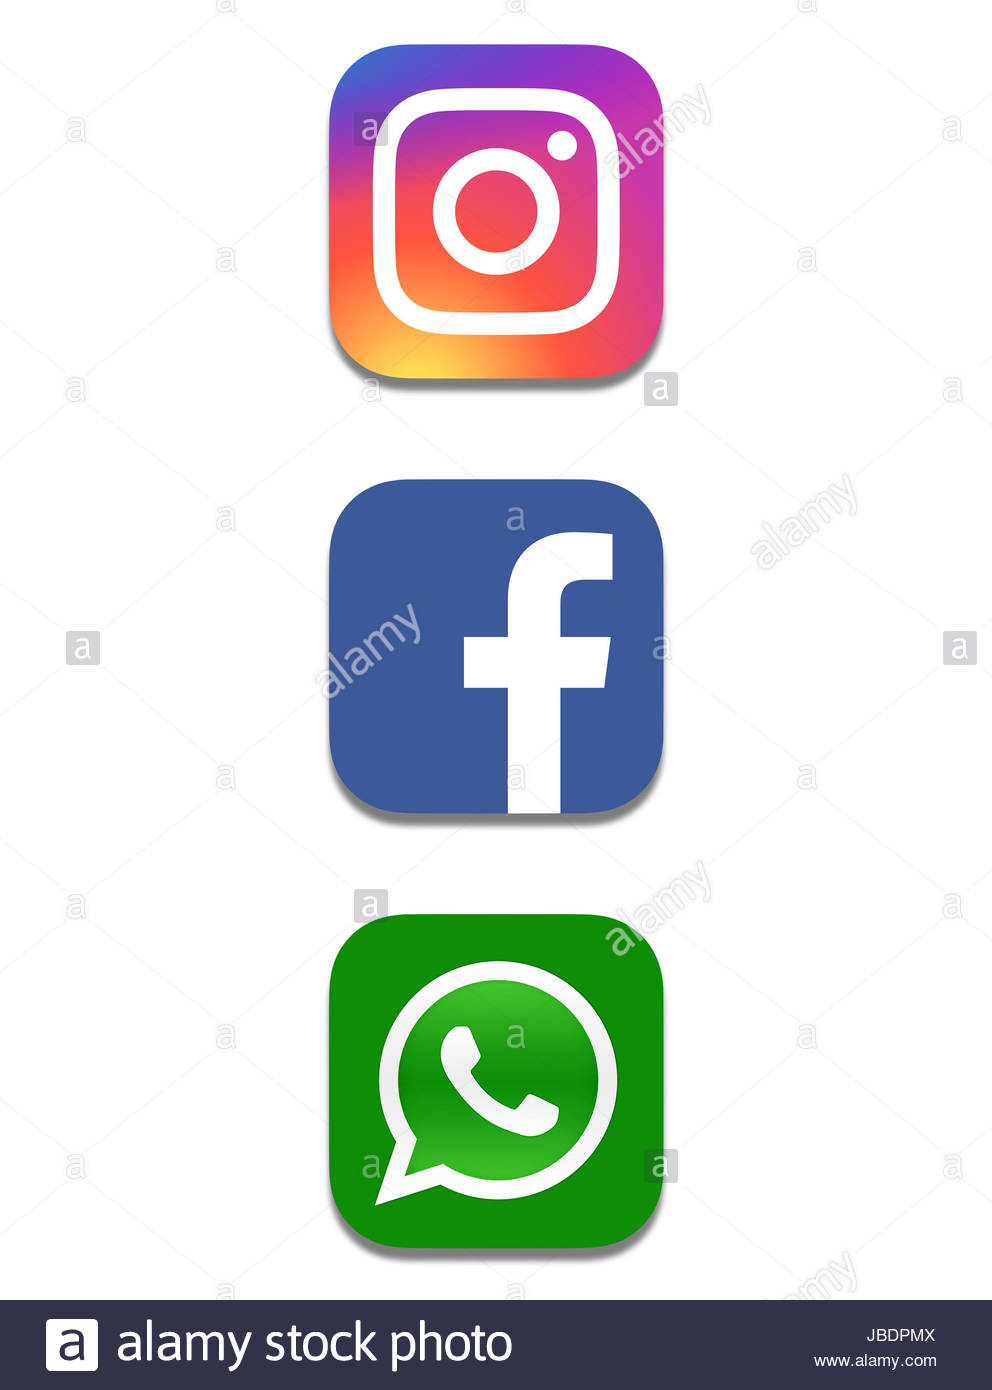 Facebook Instagram Whatsapp icon logoStock Photo